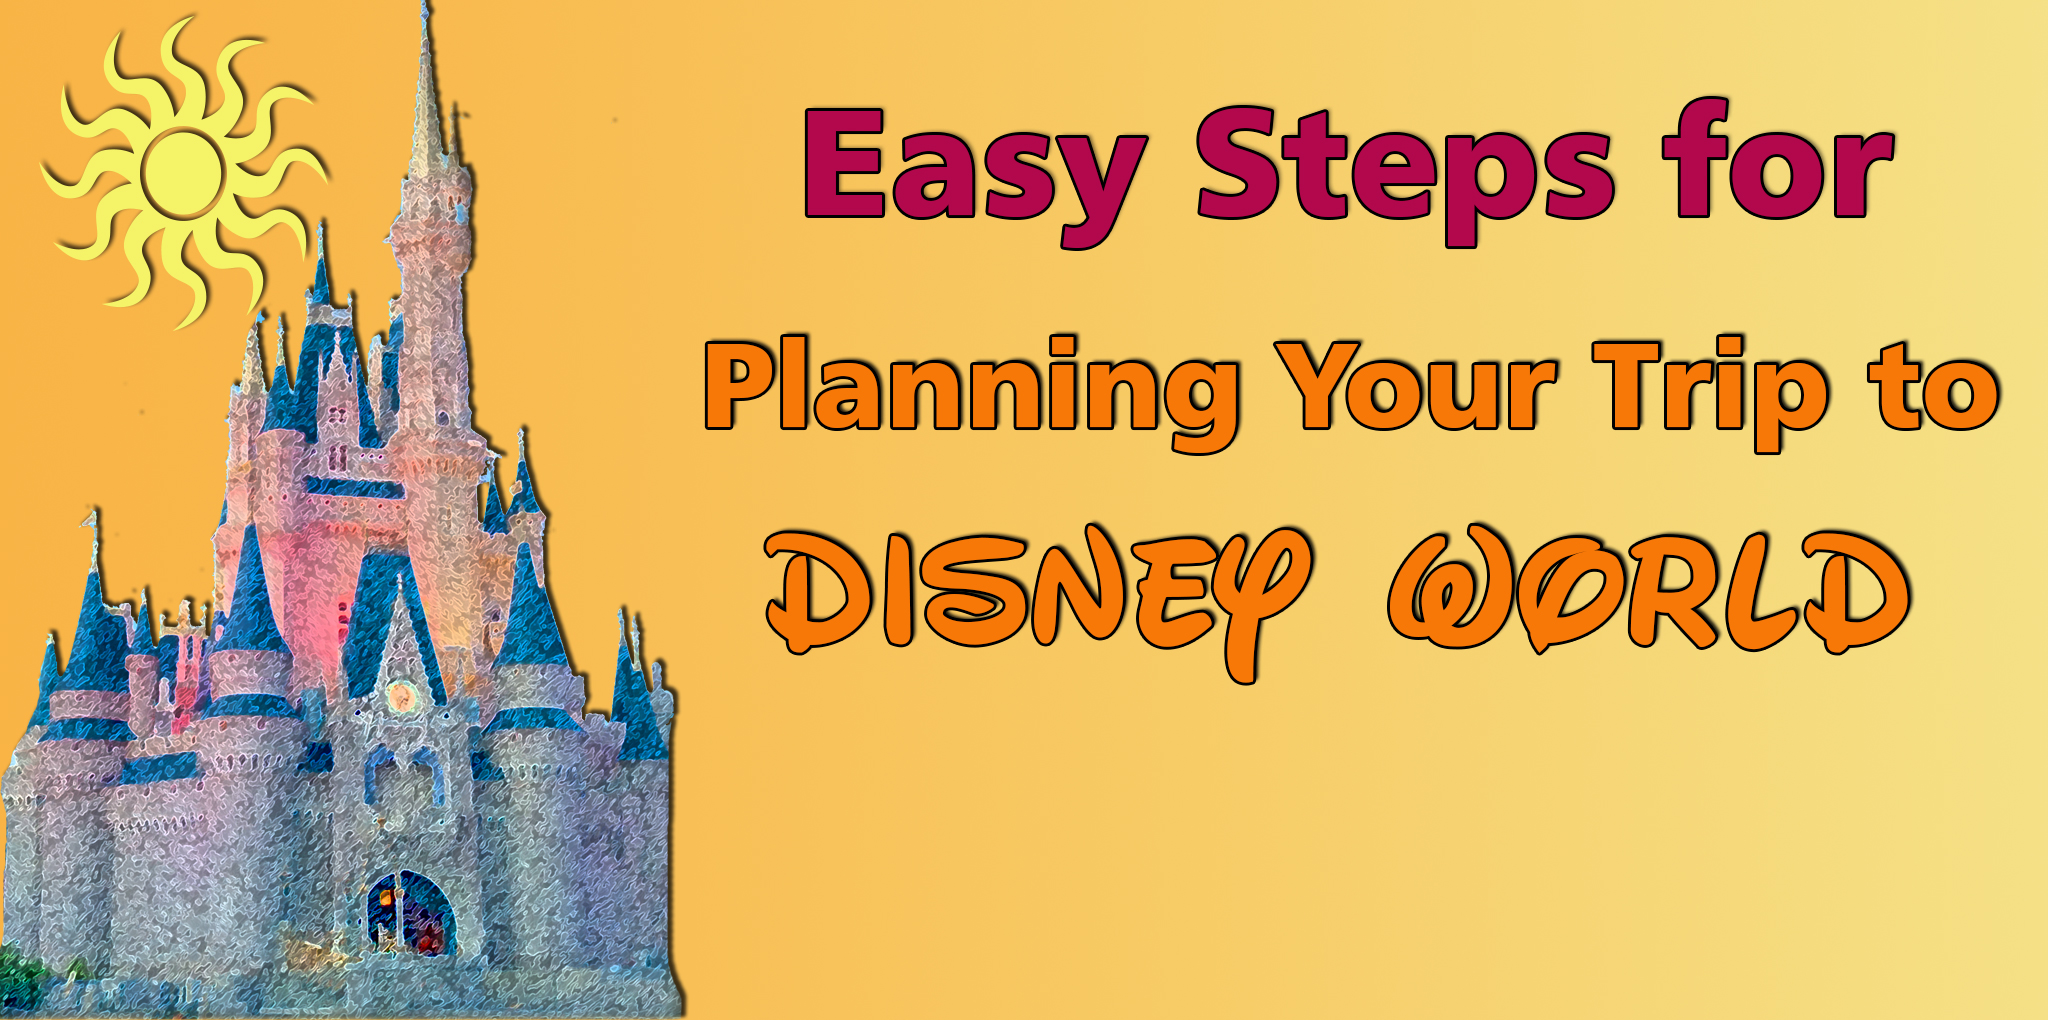 Easy Steps for Planning Your Disney World Trip  Walt